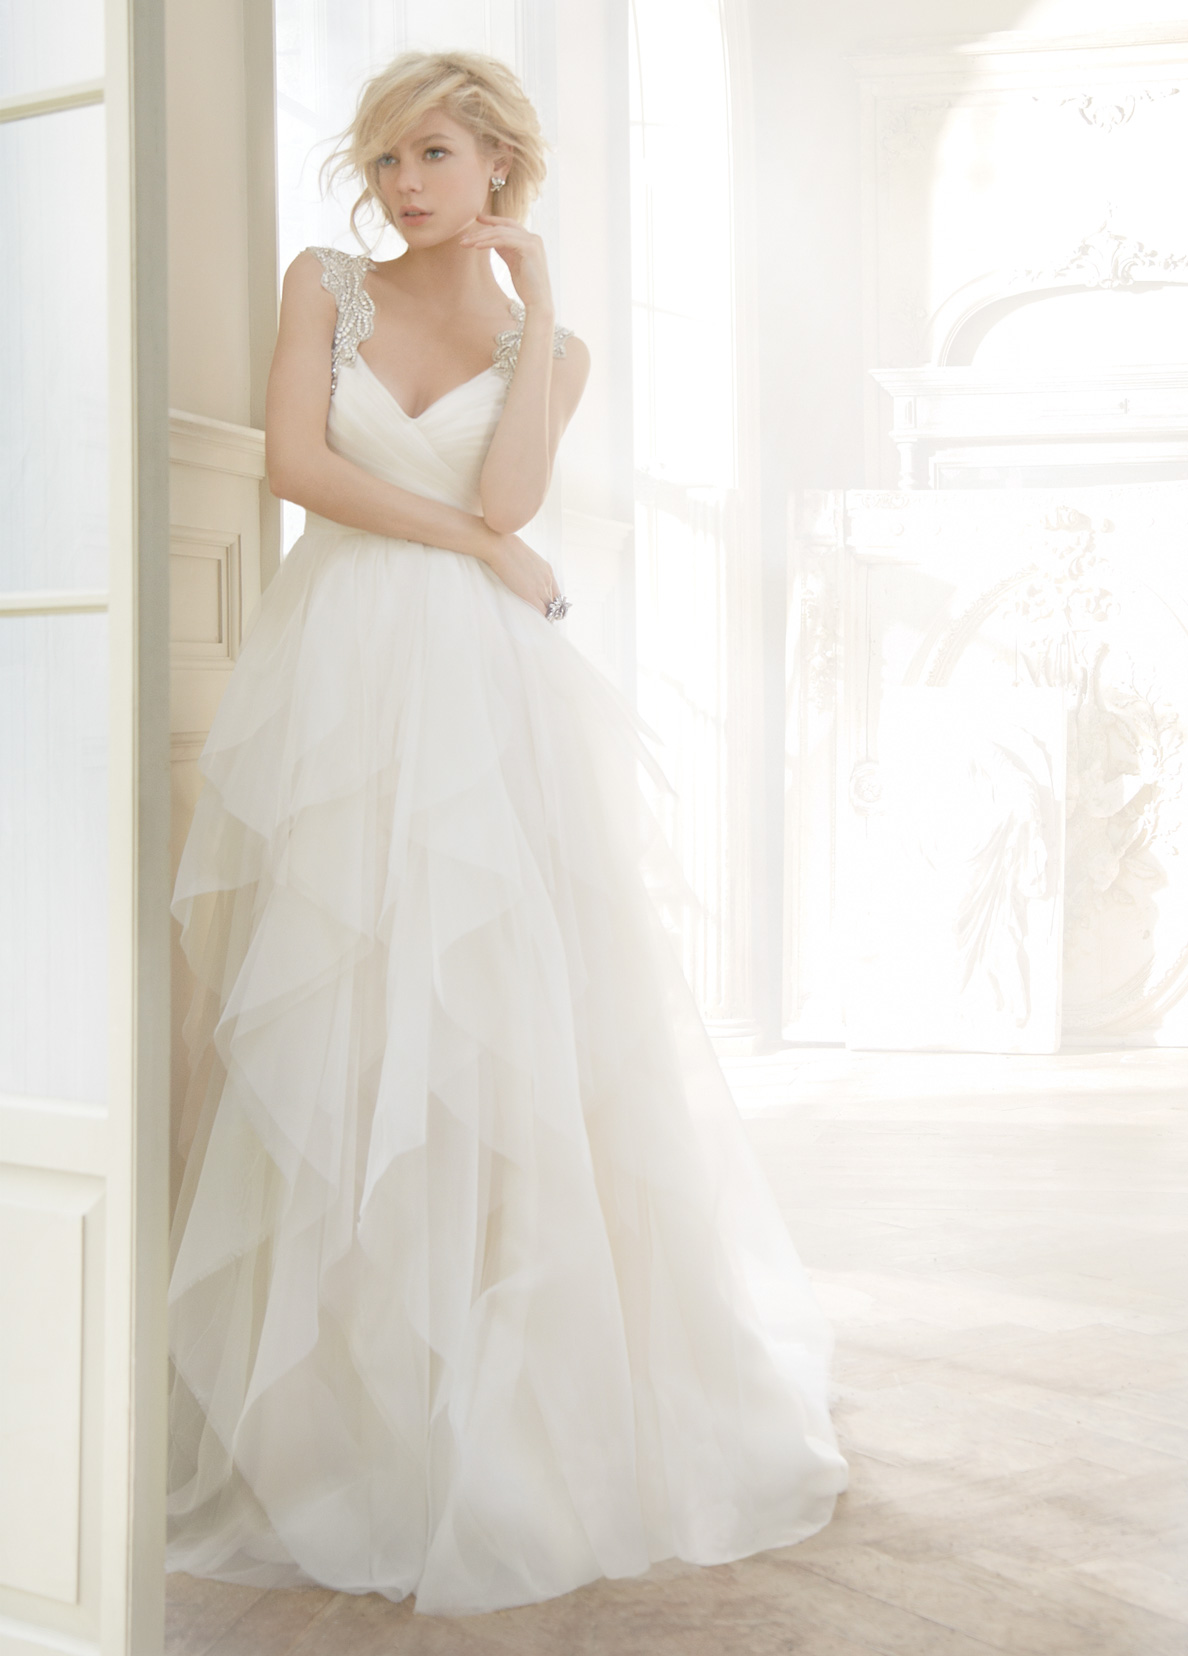 hayley-paige-wedding-dresses-8-06192014